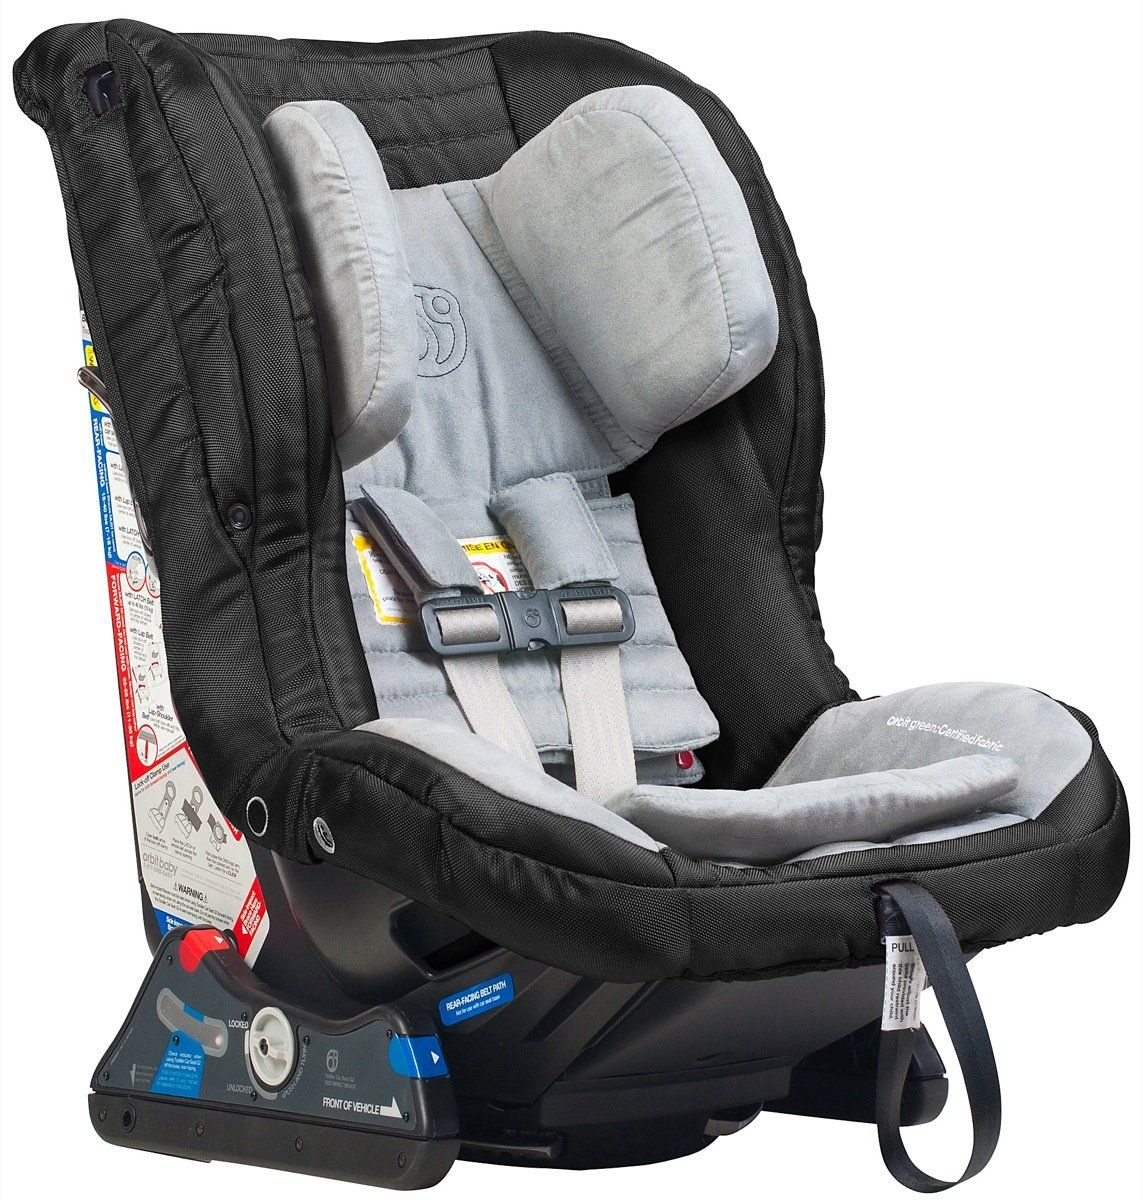 Orbit Toddler Car Seat G2 Black